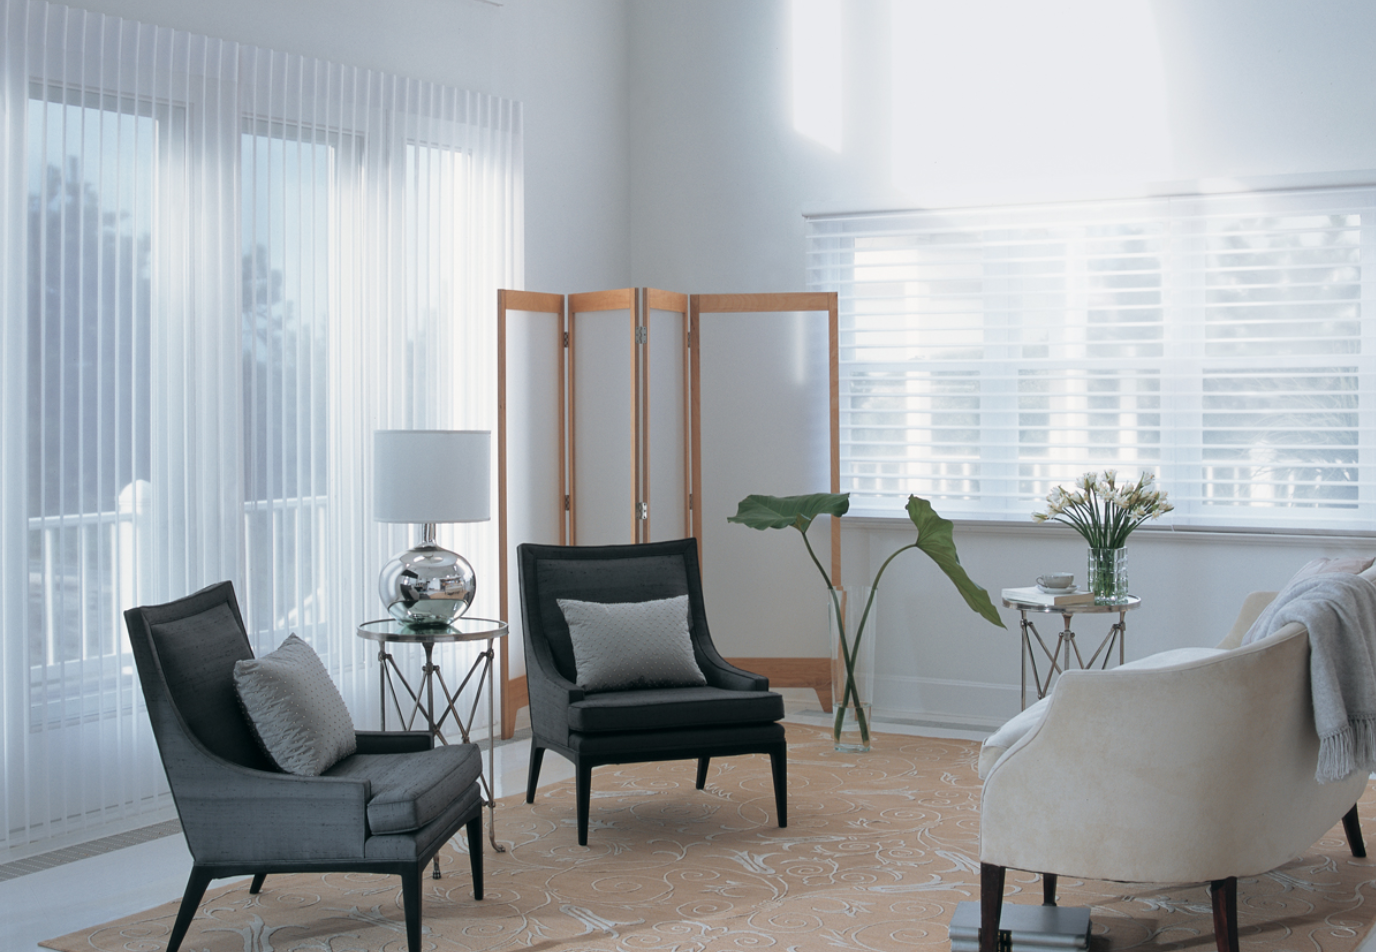 Beautiful Room with modern blinds